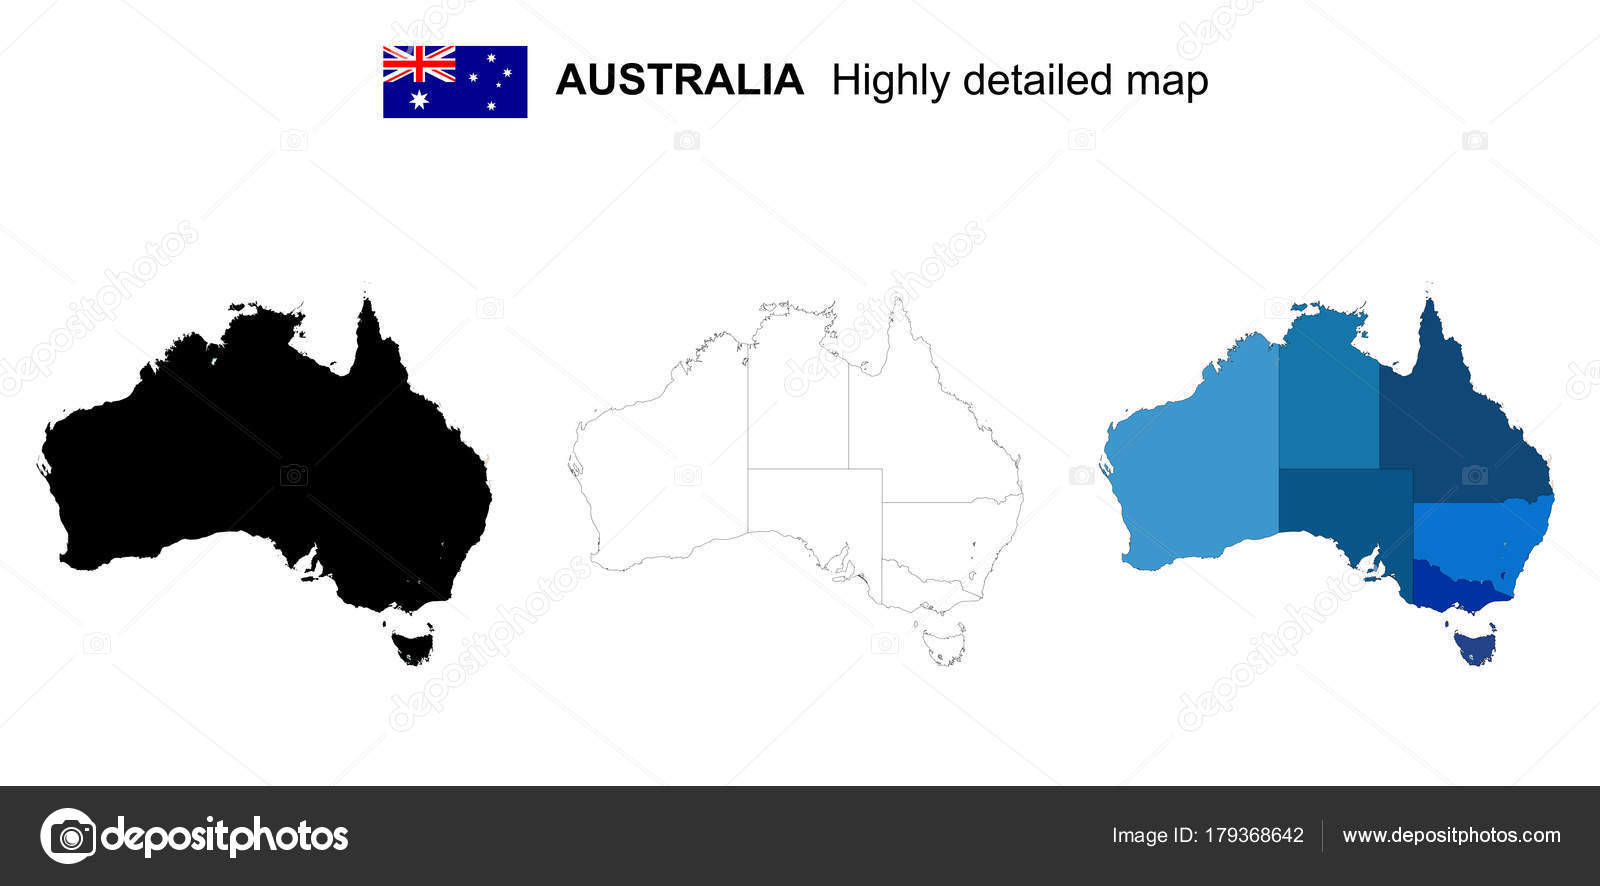 Australia Map In R.Australia Isolated Vector Highly Detailed Political Map With R